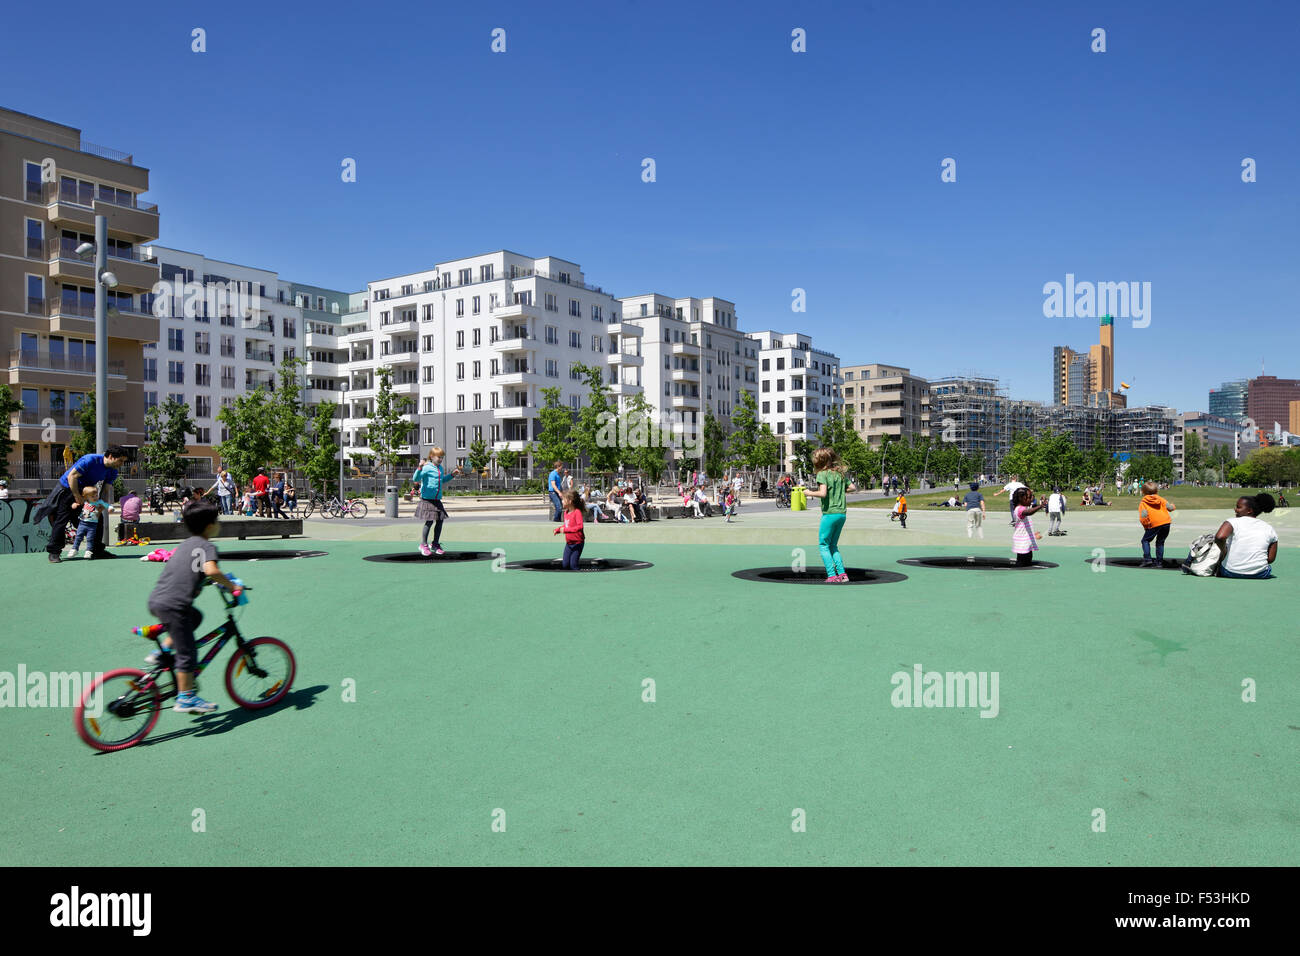 24.05.2015, Berlin, Berlin, Germany - Children playing and housing starts at the park at Gleisdreieck in Berlin Stock Photo